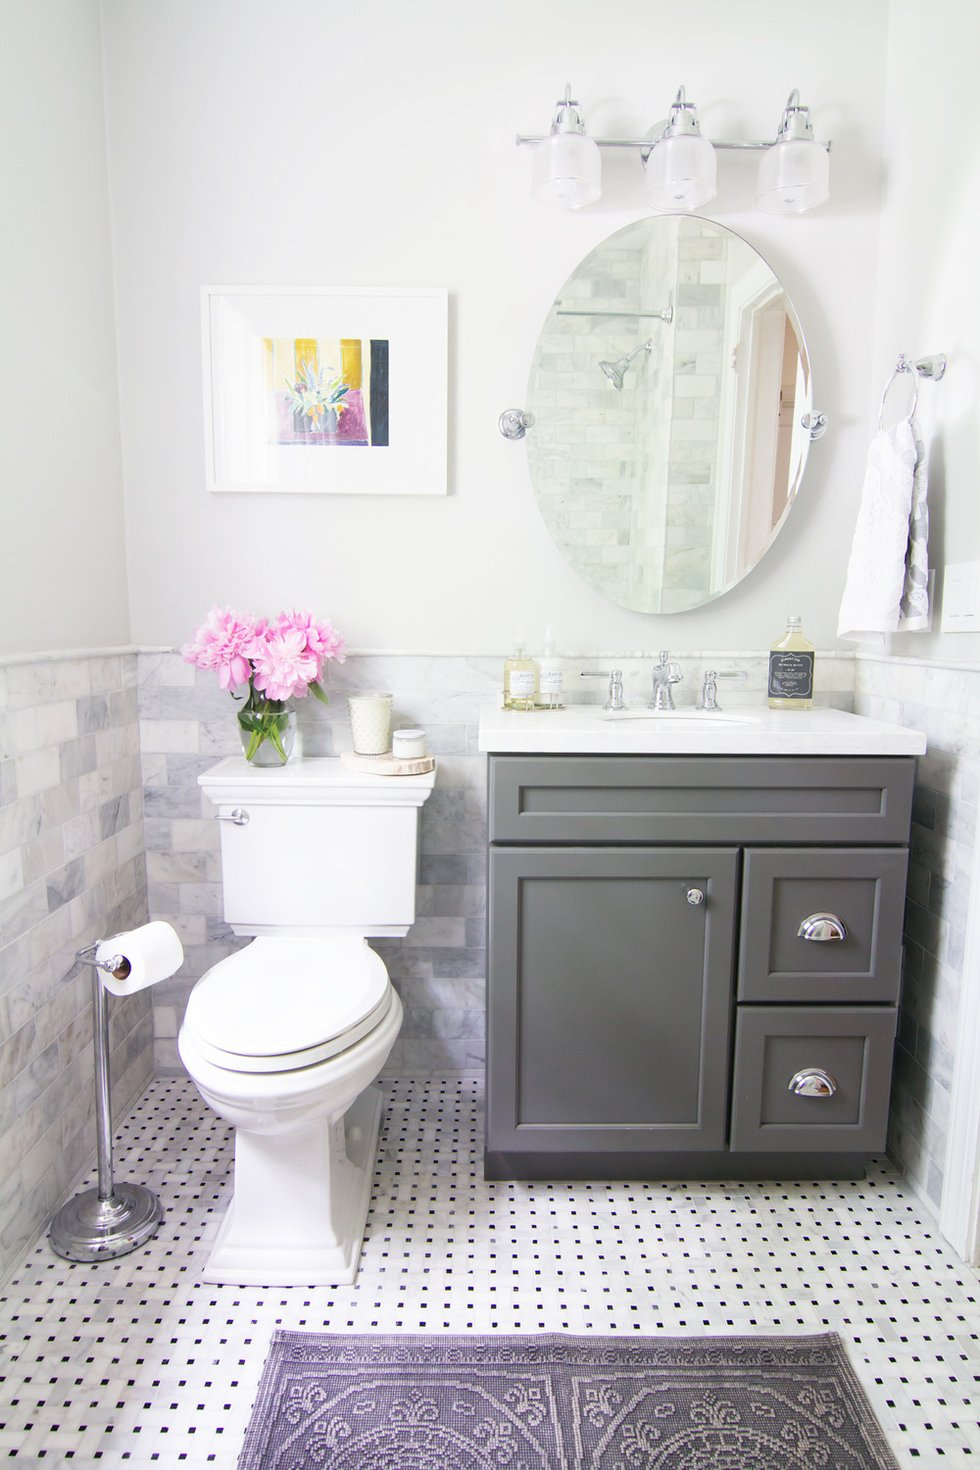 Modern and simple small bathroom ideas you can try at home for Bathroom mirror ideas for a small bathroom